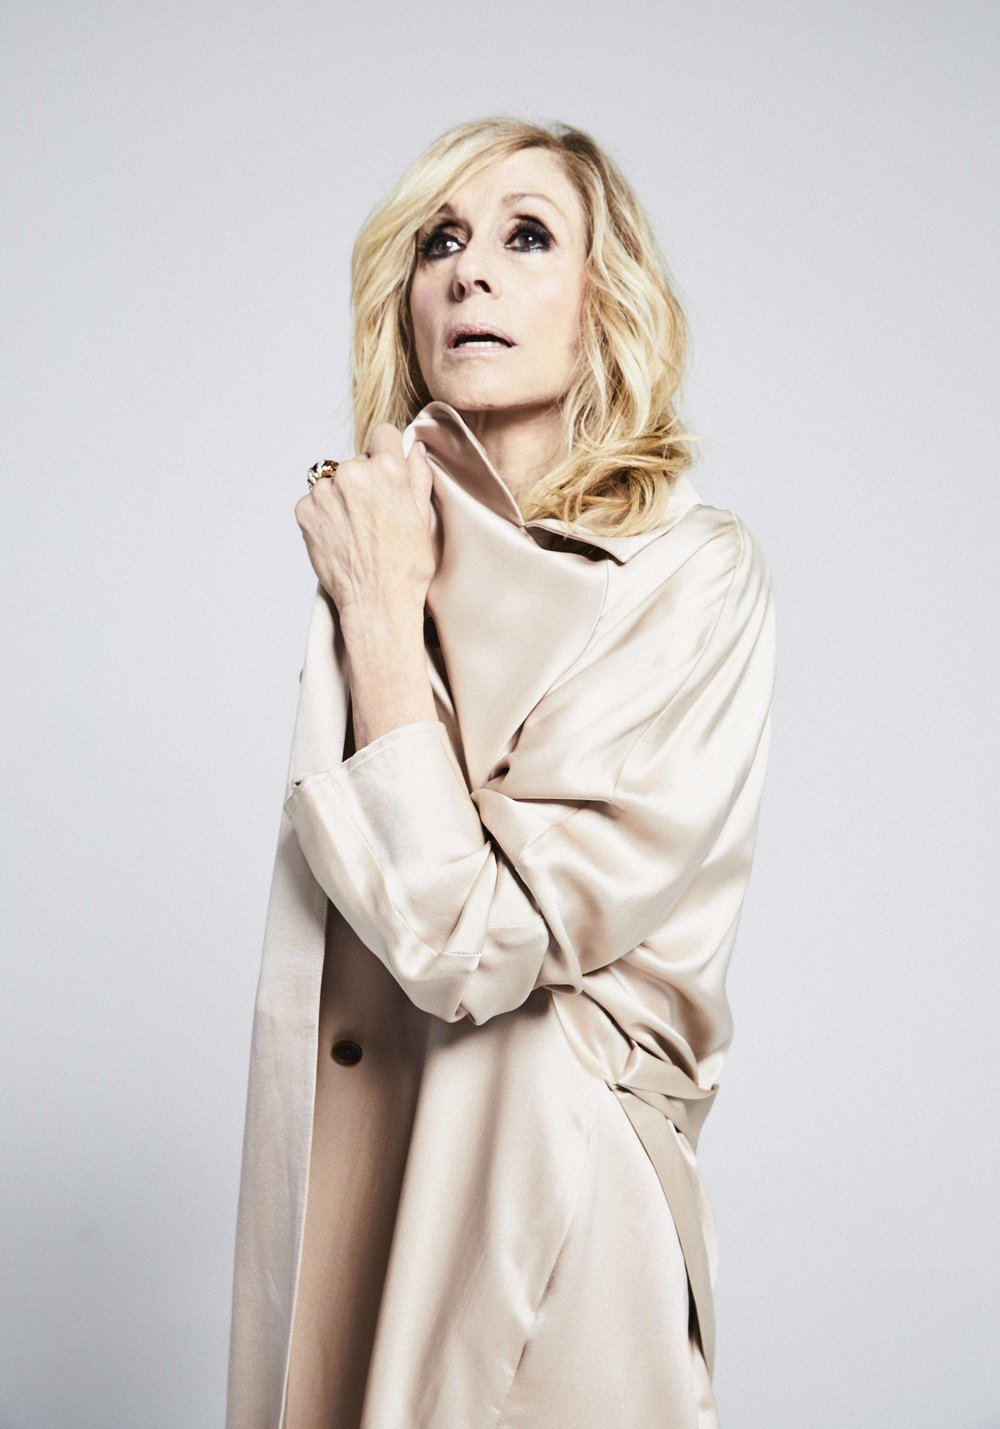 JudithLight_069.jpg